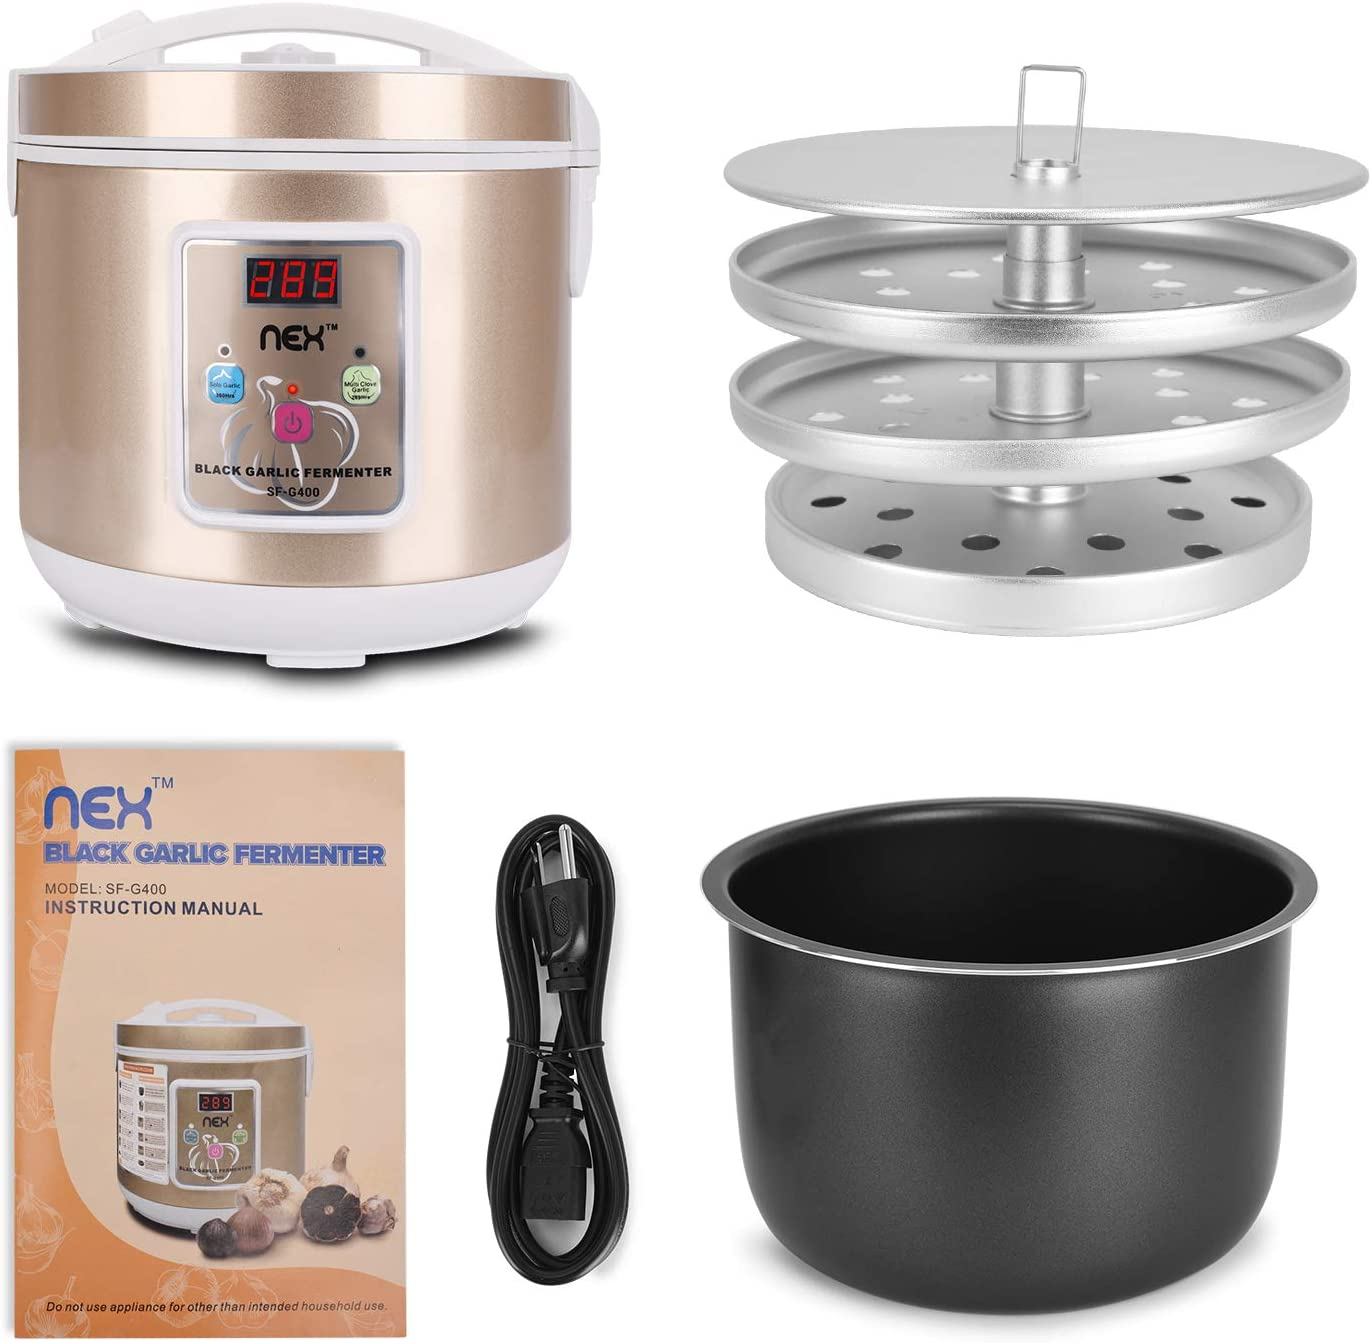 AC110-120V 2-in-1 Electric Black Garlic Cooker Full Automatic ...